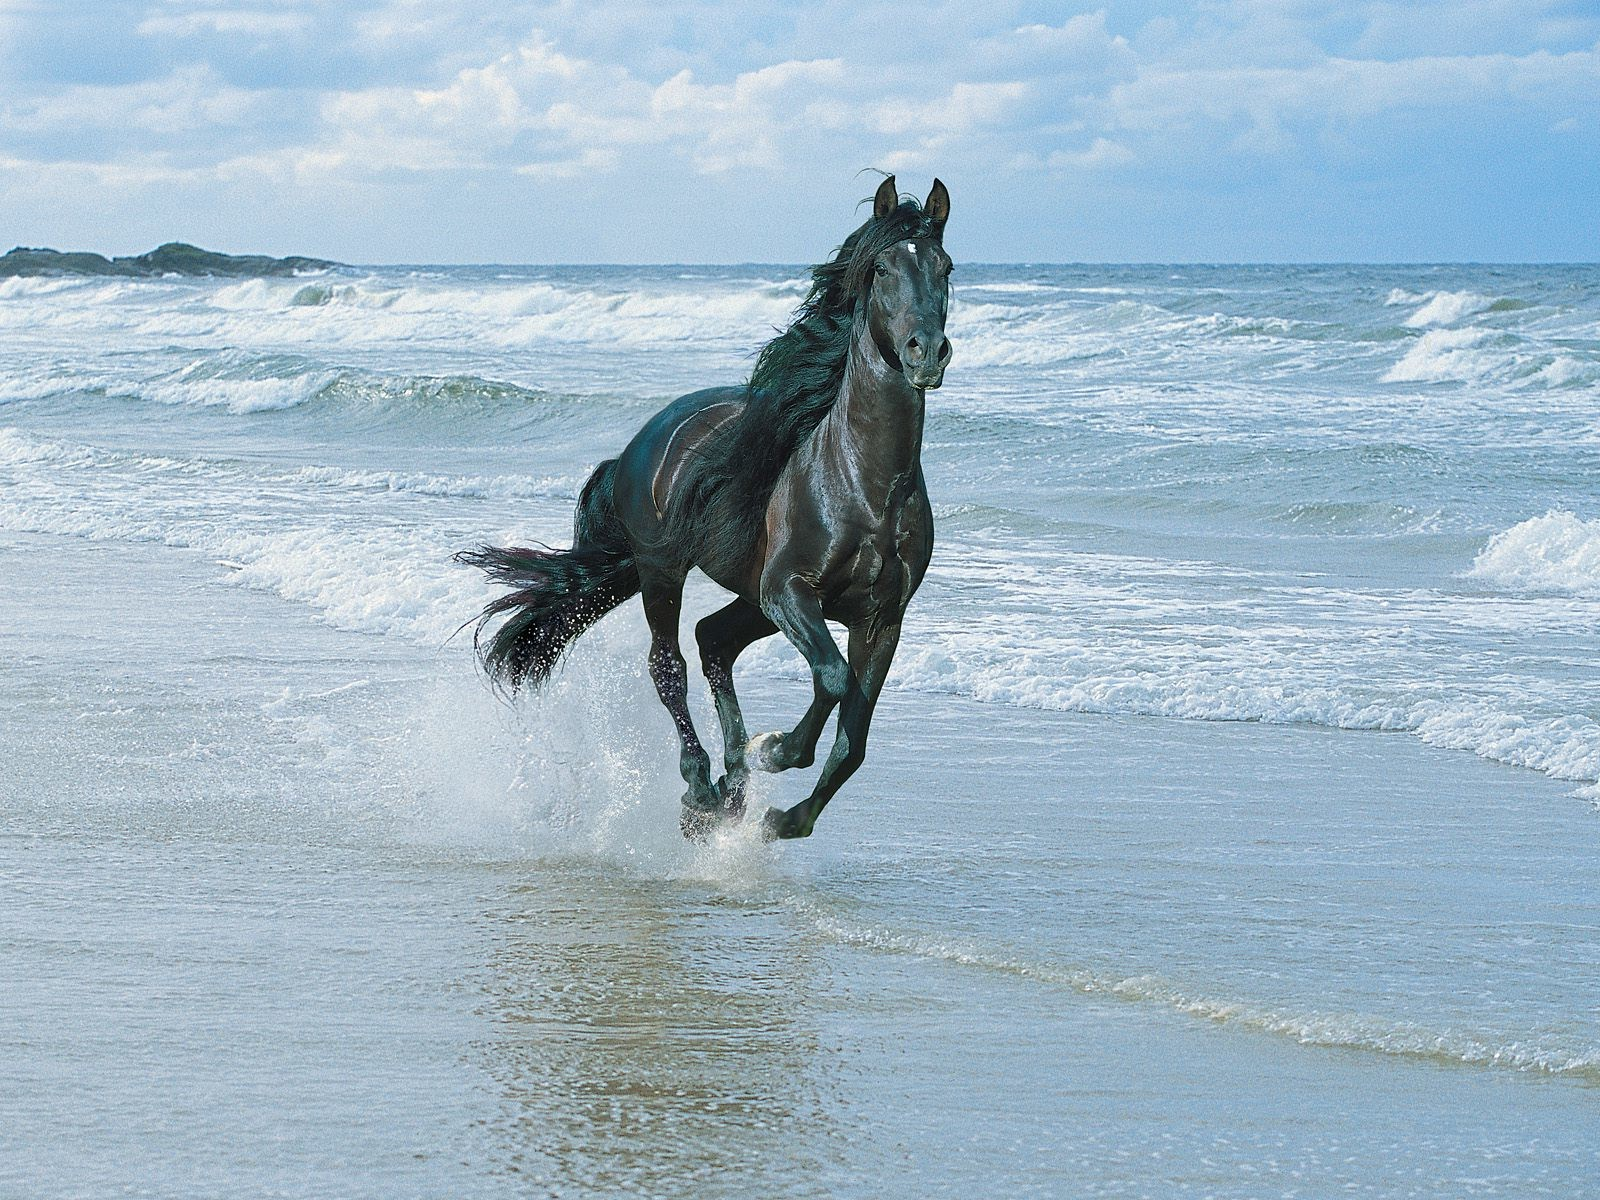 Arabian Horse Background Free Download Running Horse In Water 1600x1200 Wallpaper Teahub Io